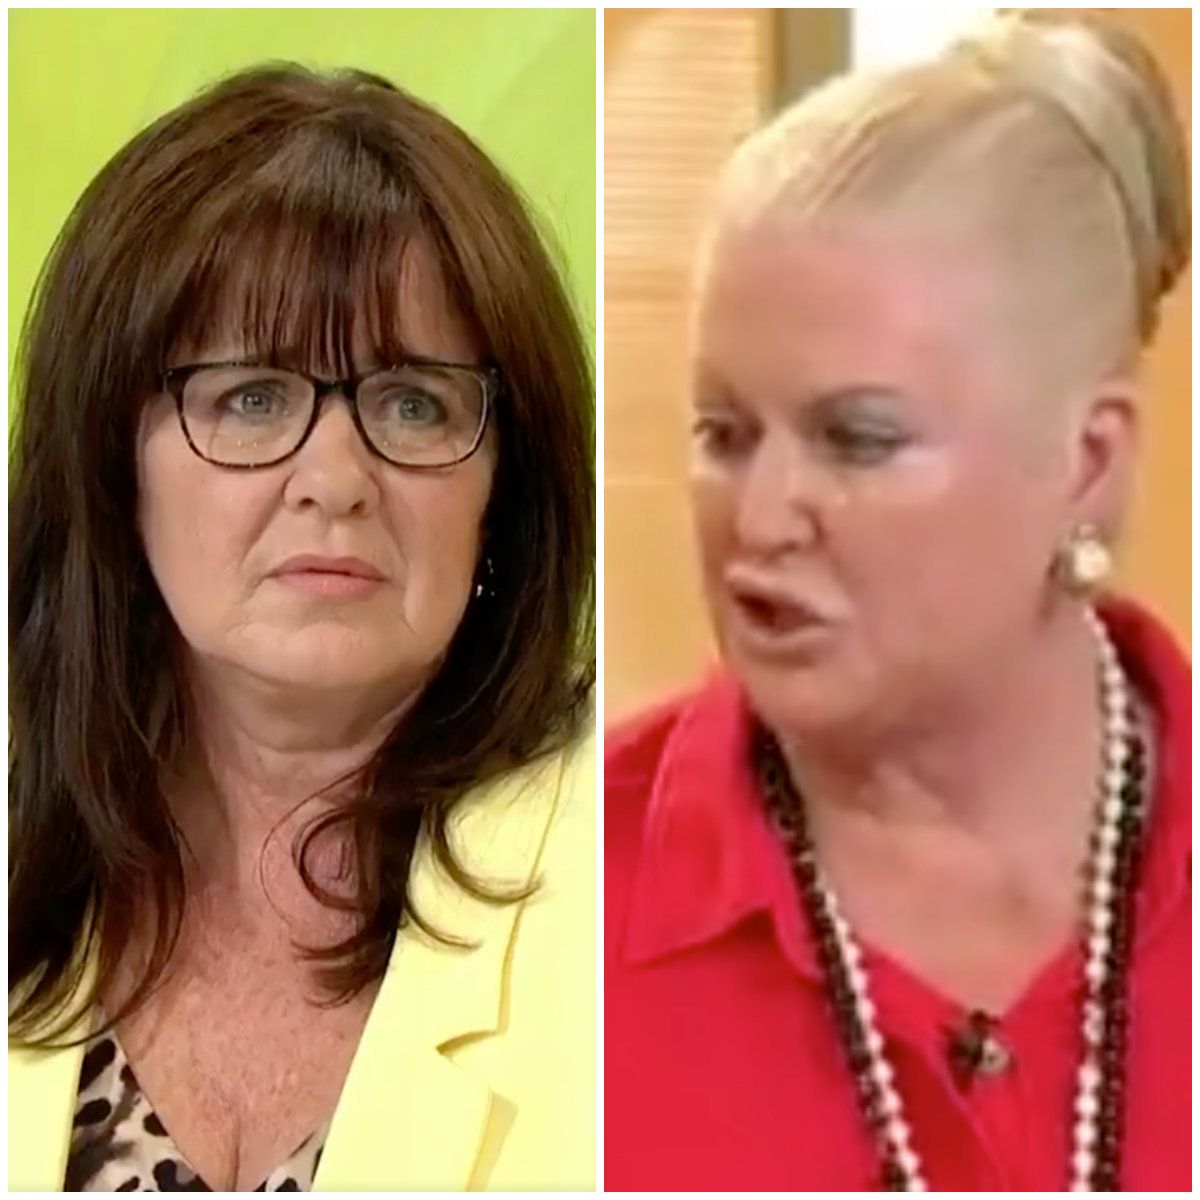 'Loose Women' Viewers Accuse Show Of Trying To Score Ratings With 'Uncomfortable' Kim Woodburn Interview